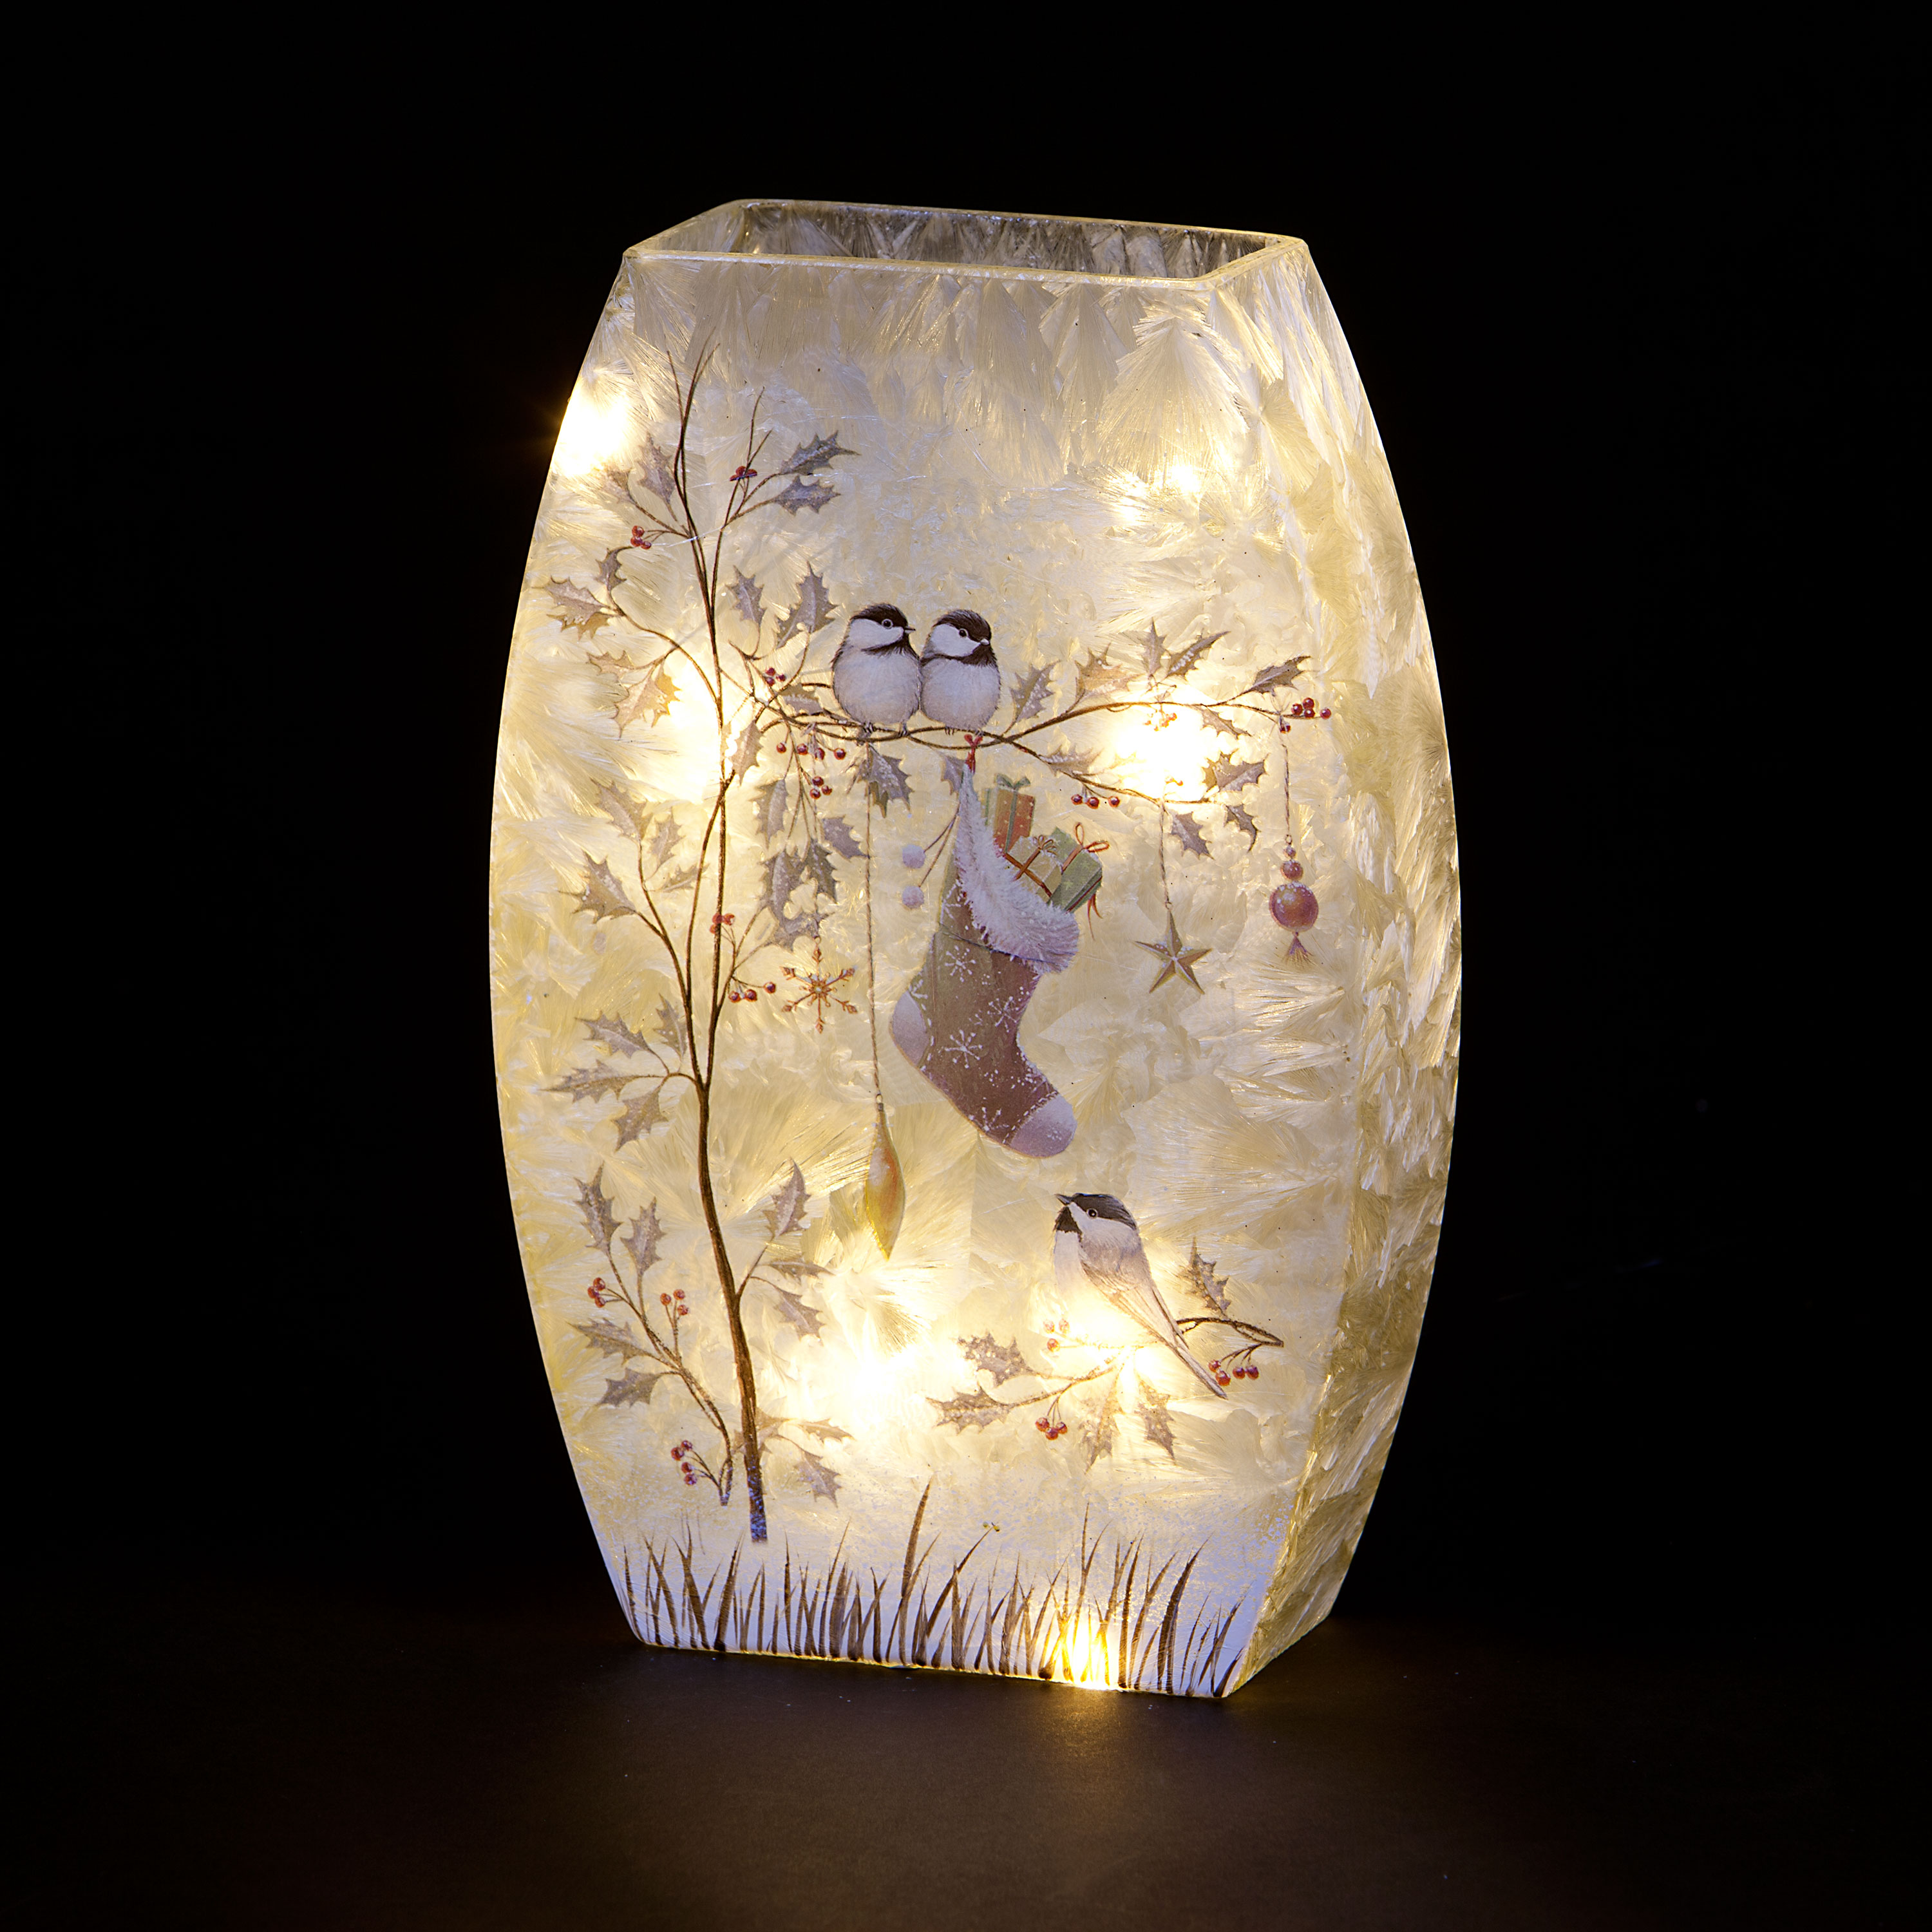 Illuminated Table Lamp with Christmas Gifts Design